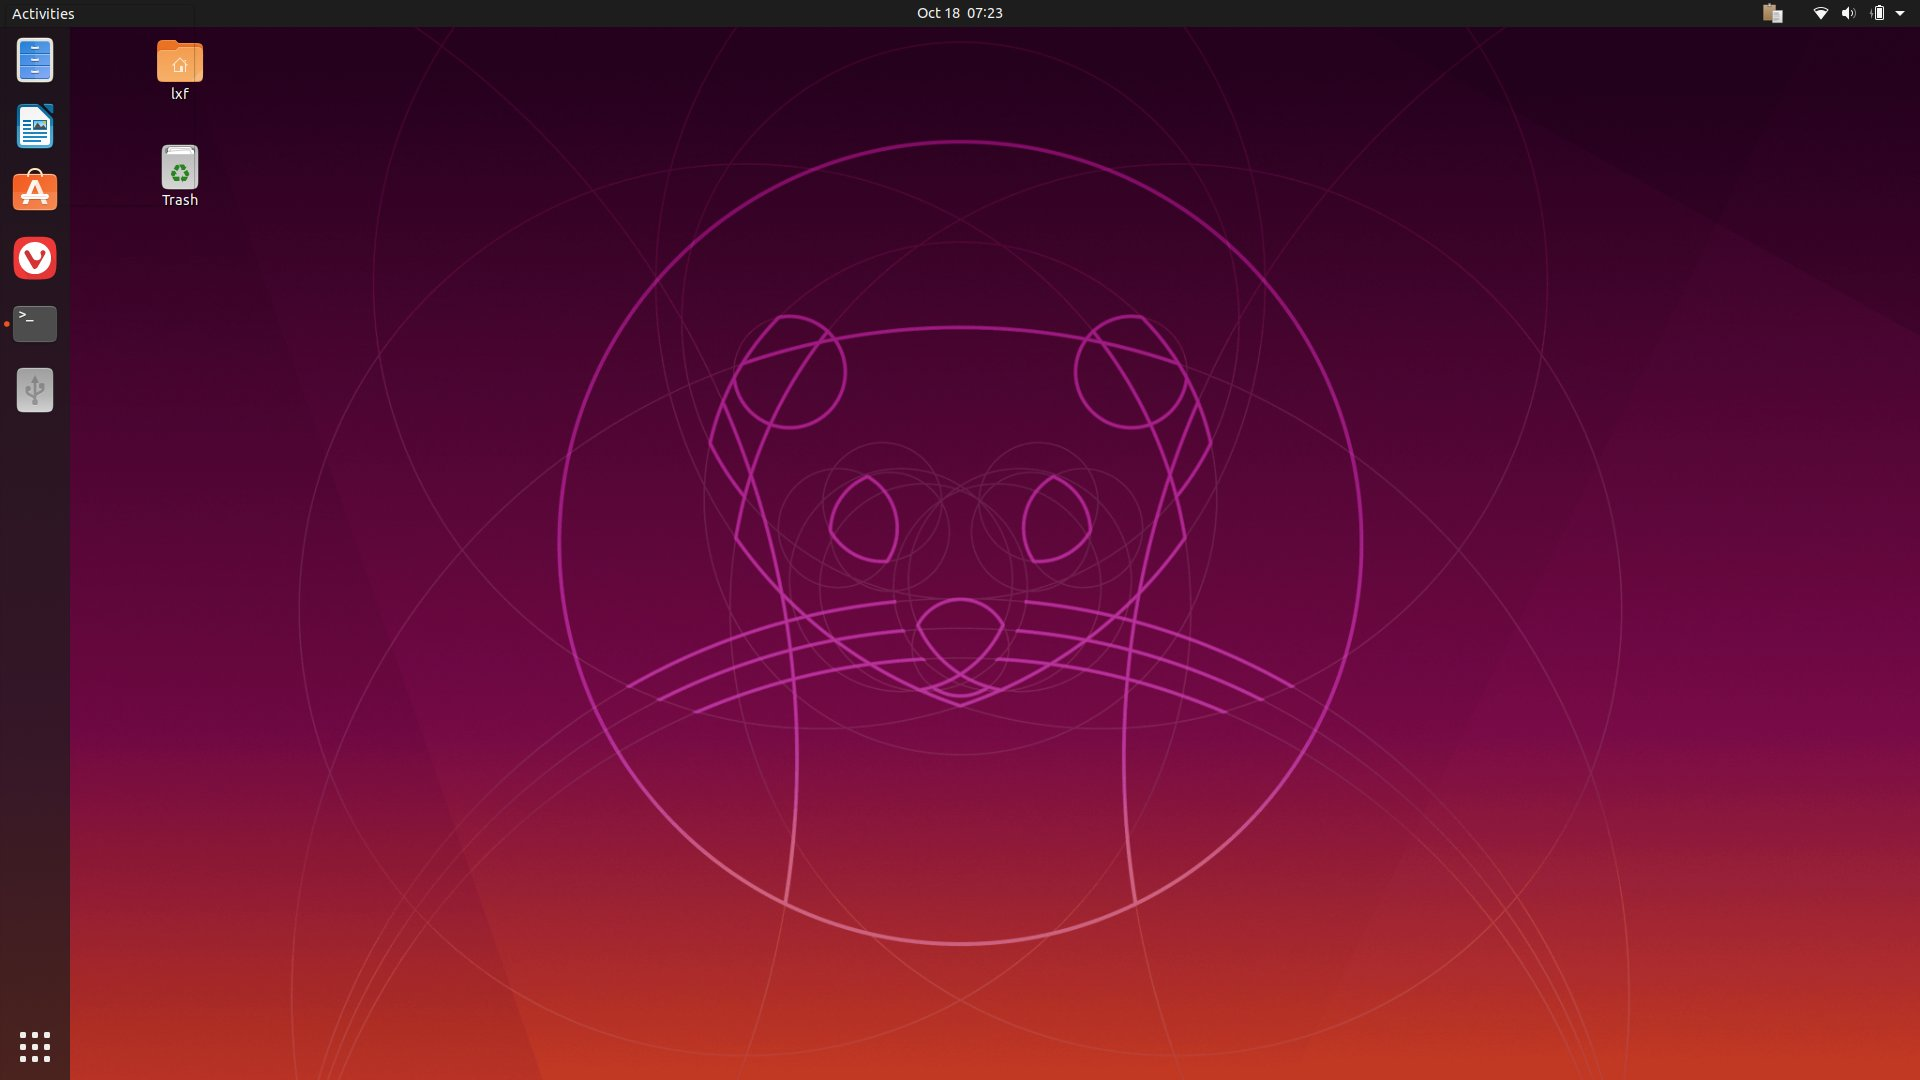 The default GNOME desktop in Ubuntu 19.10.